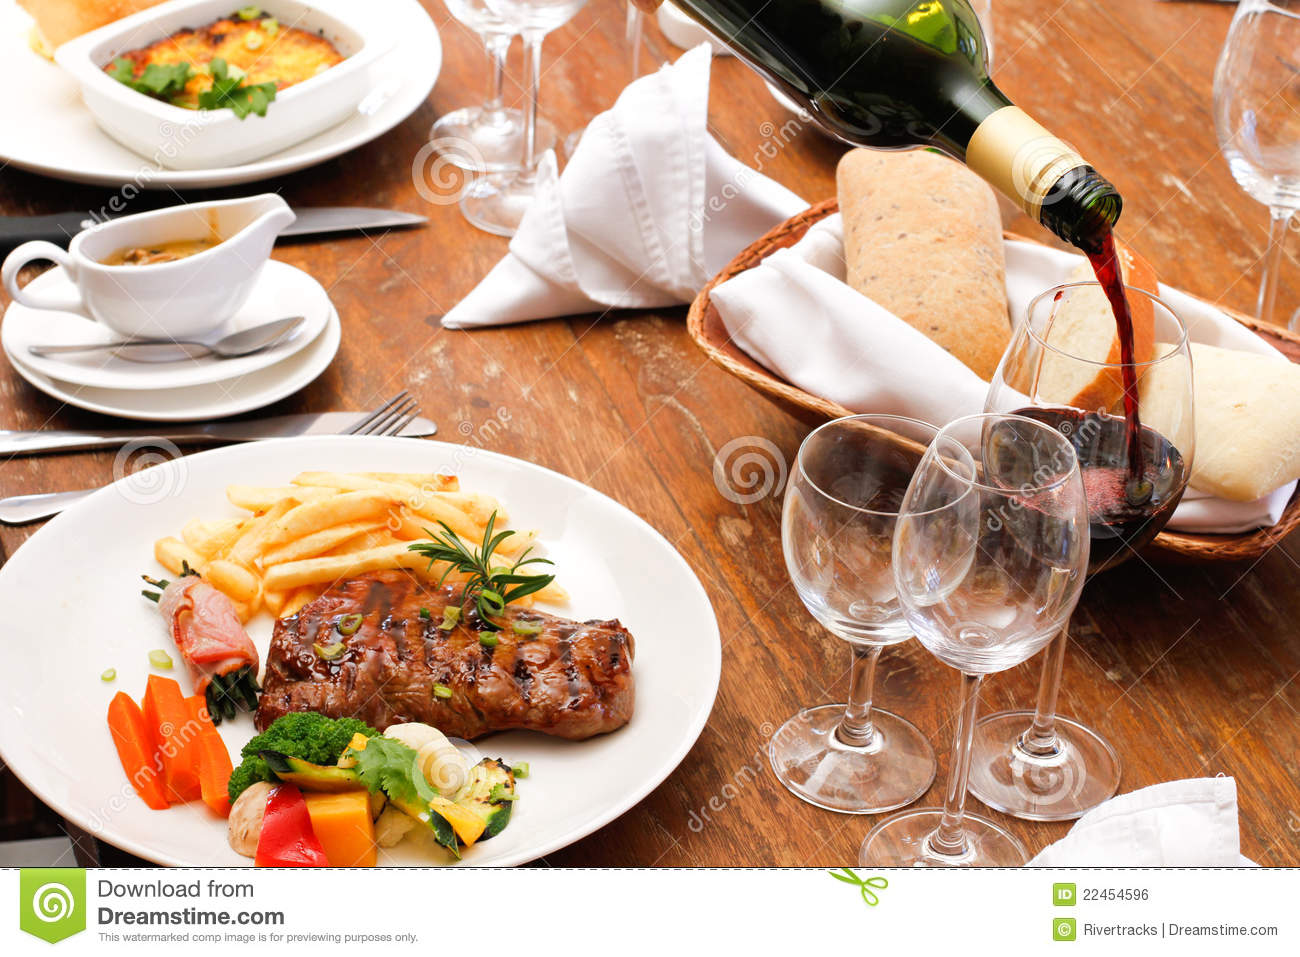 Wine with restaurant food plate